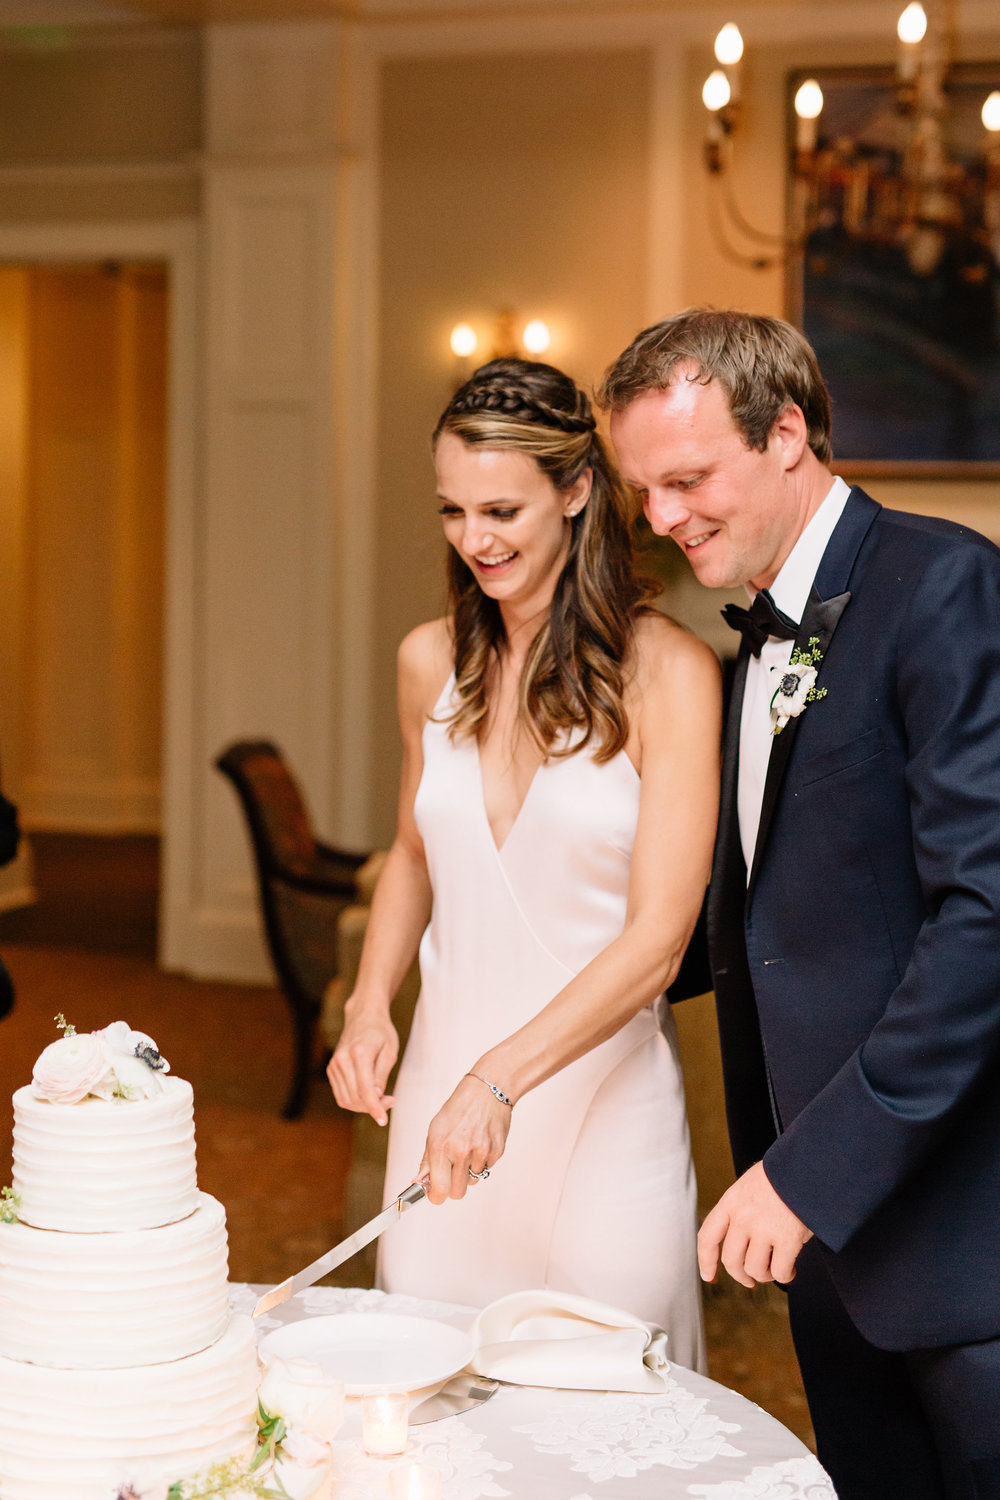 Cake Cutting, Winter Park Weddings